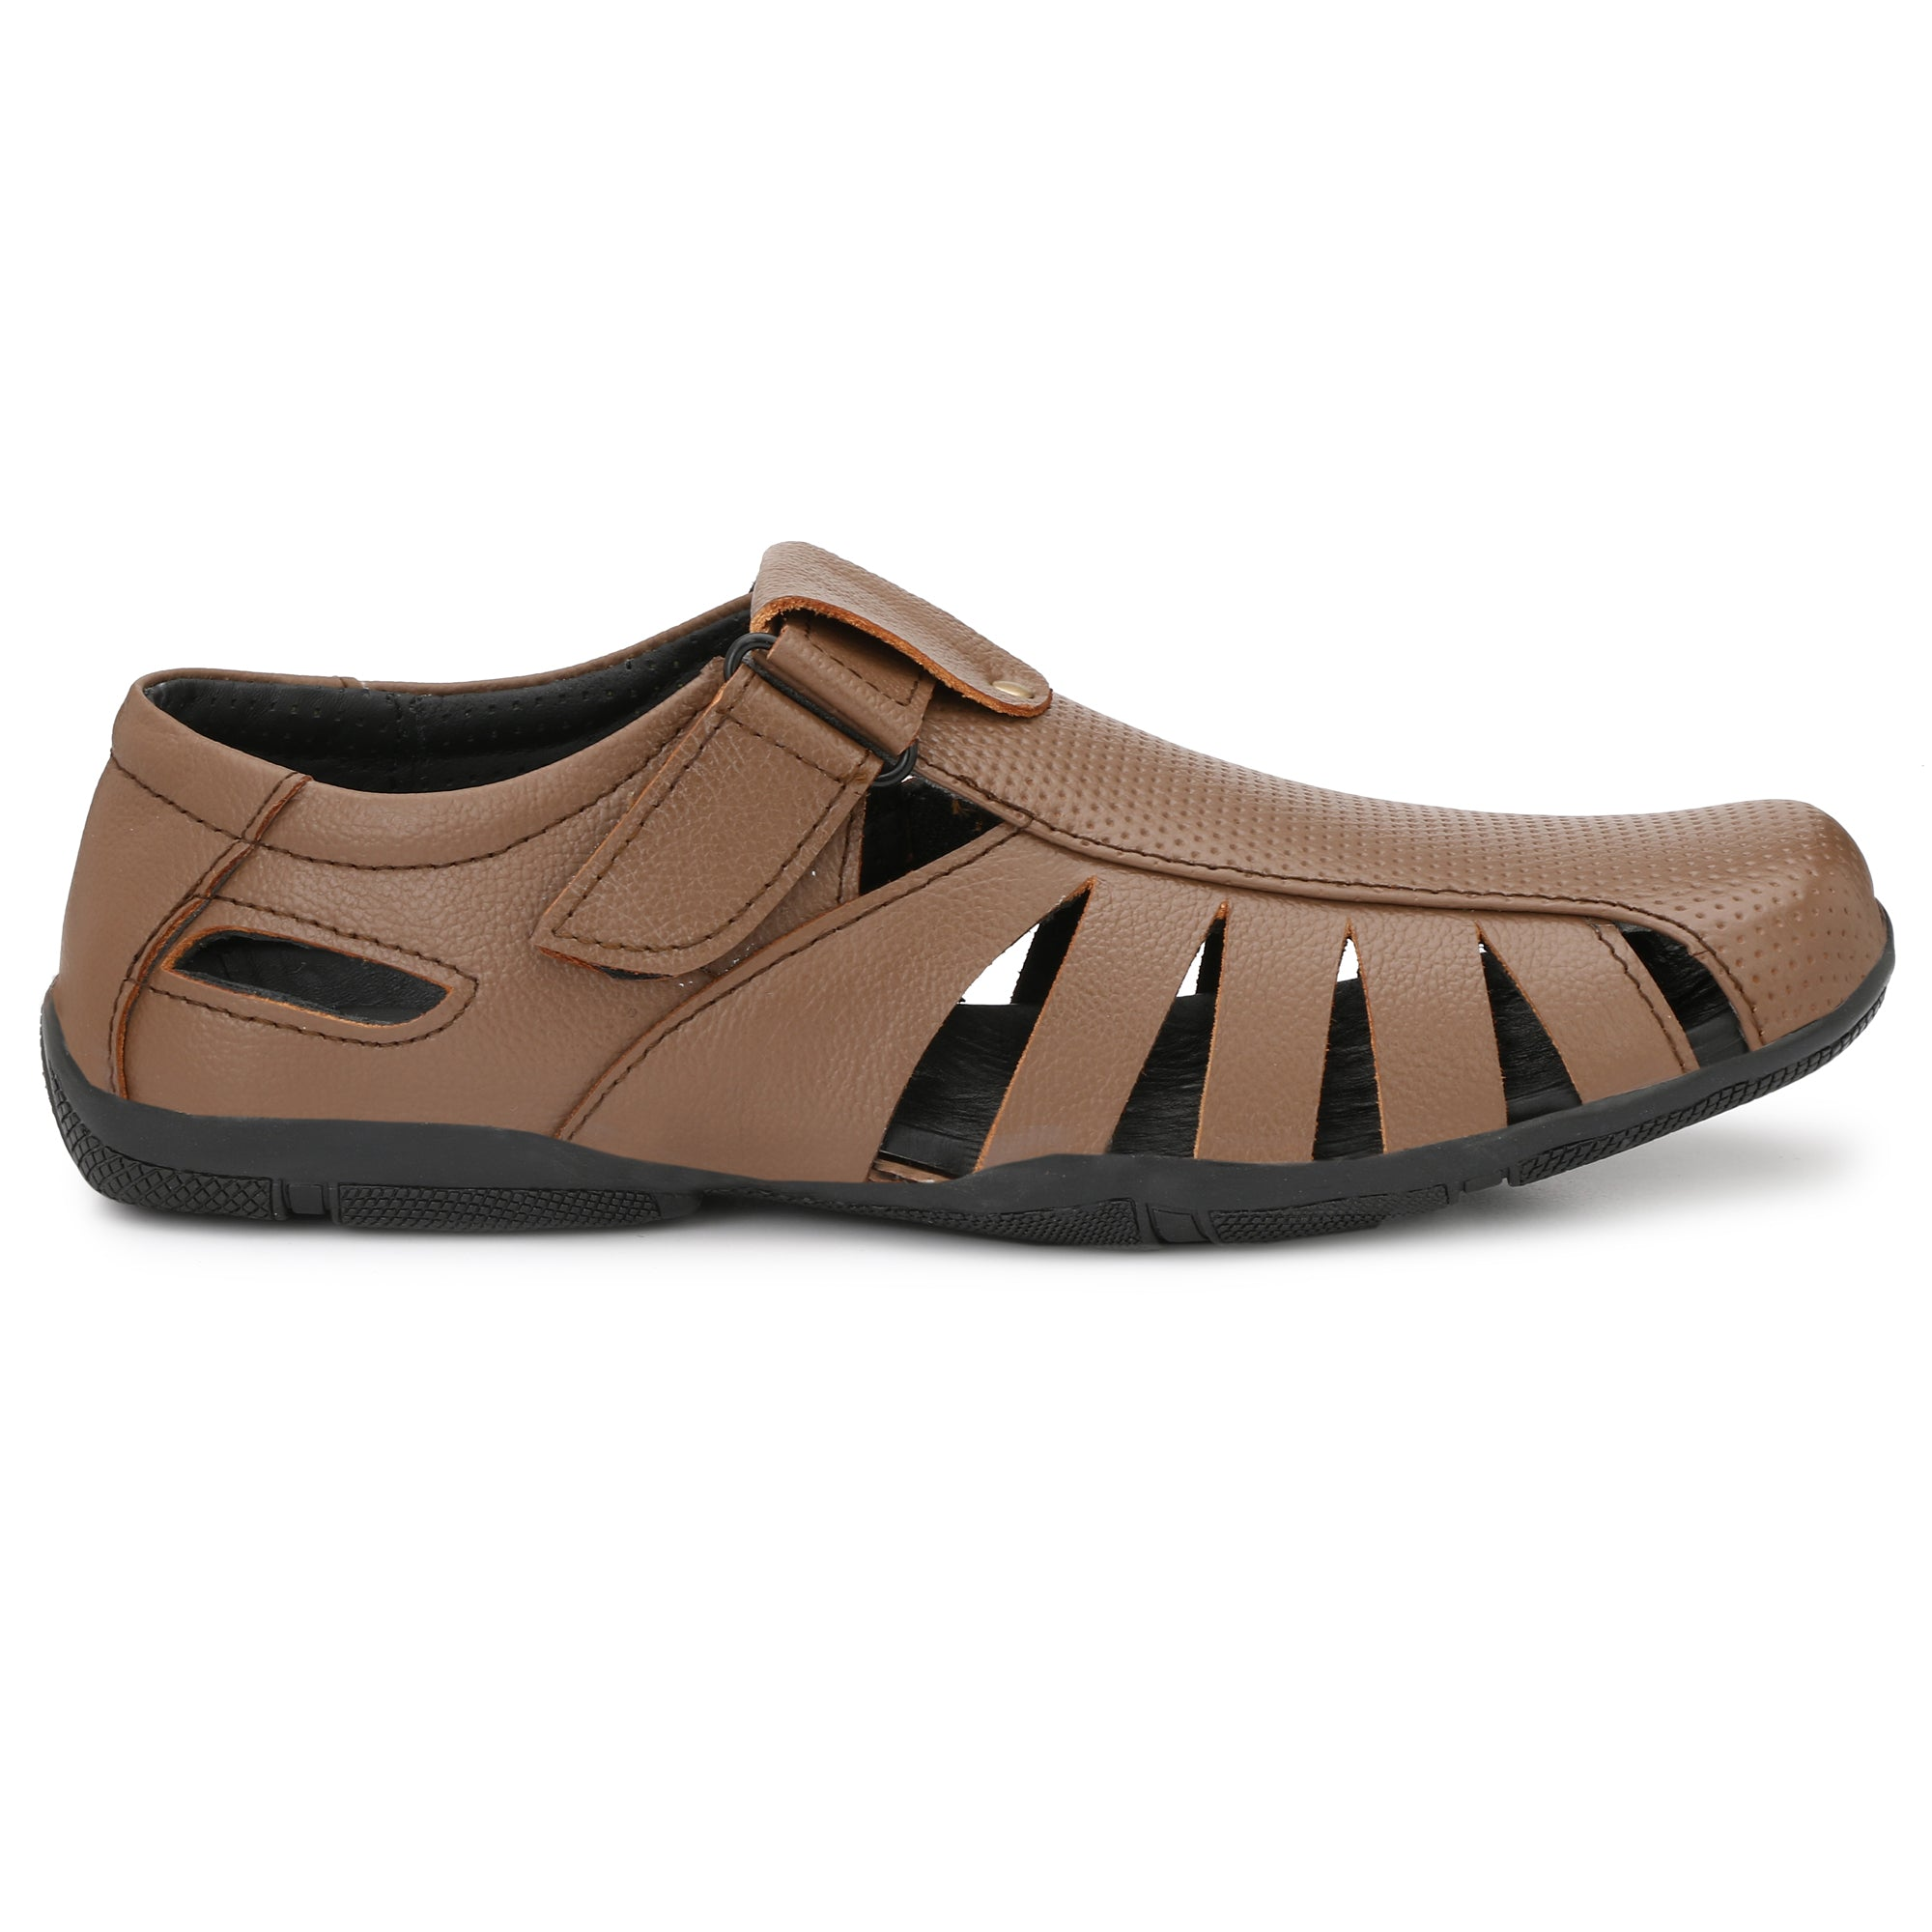 King Karlos Office Formal leather sandals - Shopping With Deals